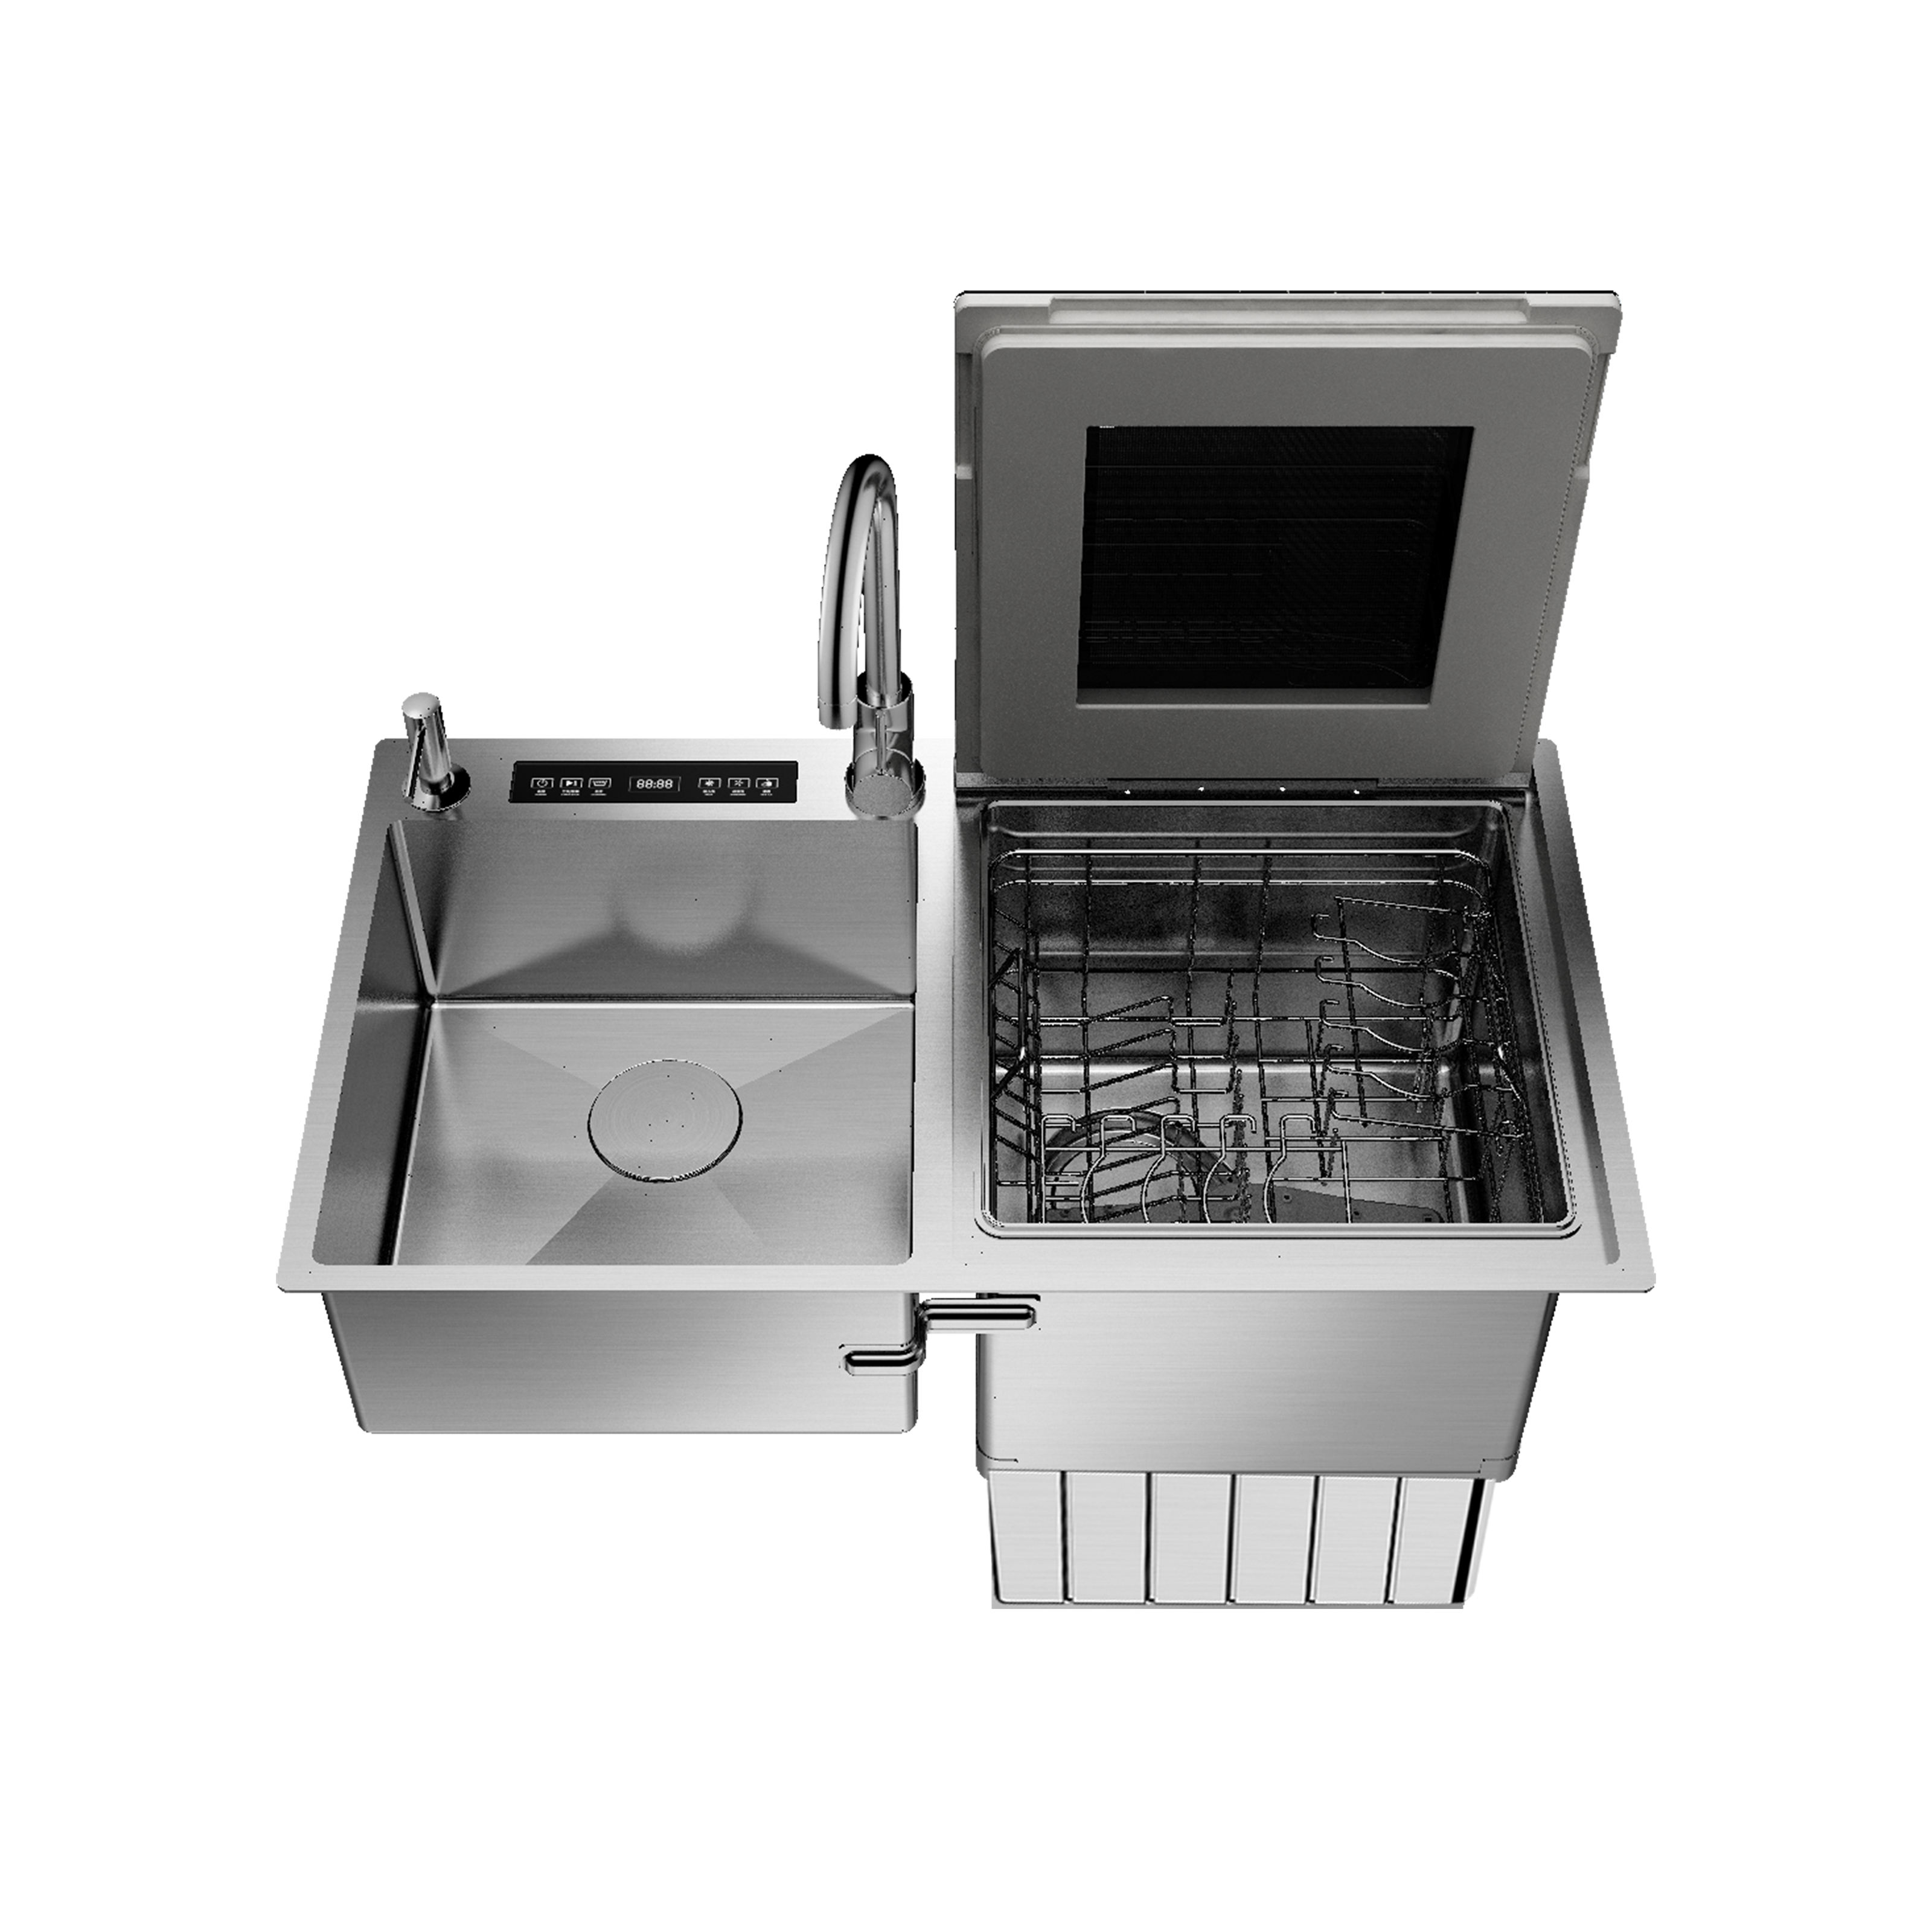 Automatic Dishwasher Sink Machine Washing Stainless Steel Countertop Dishwashers For Home